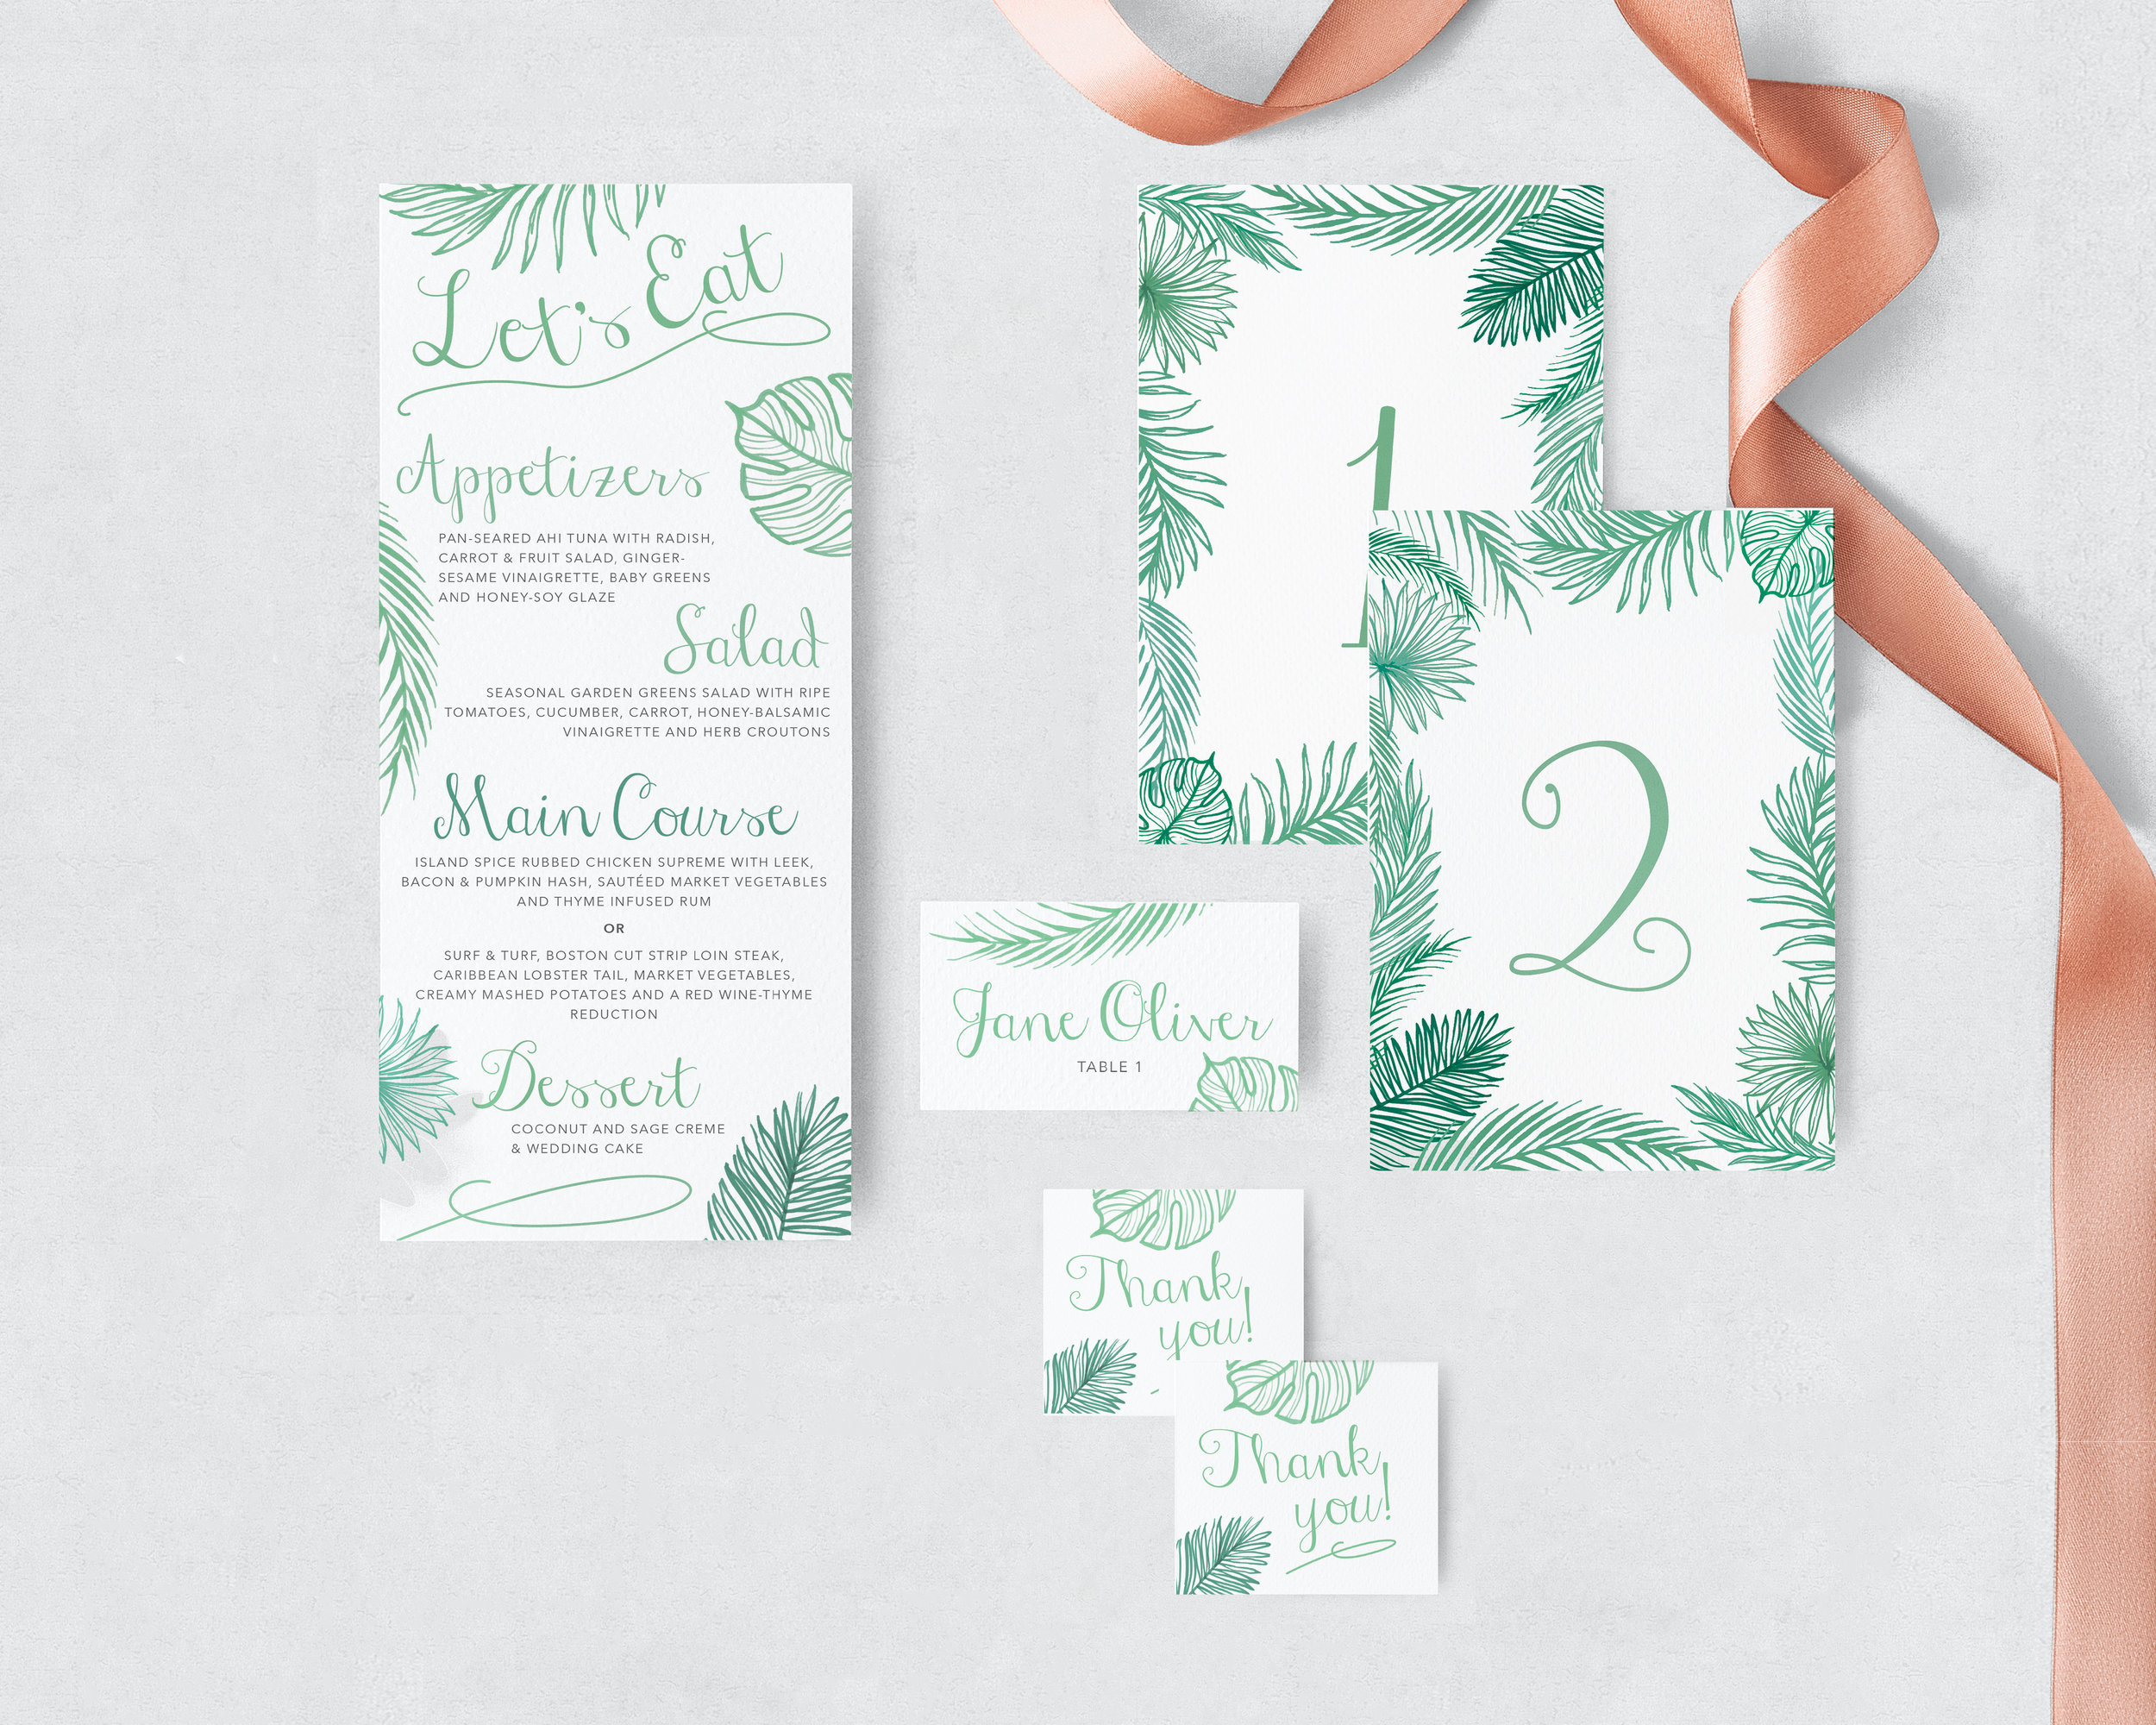 Wedding Stationery Mockup2.jpg